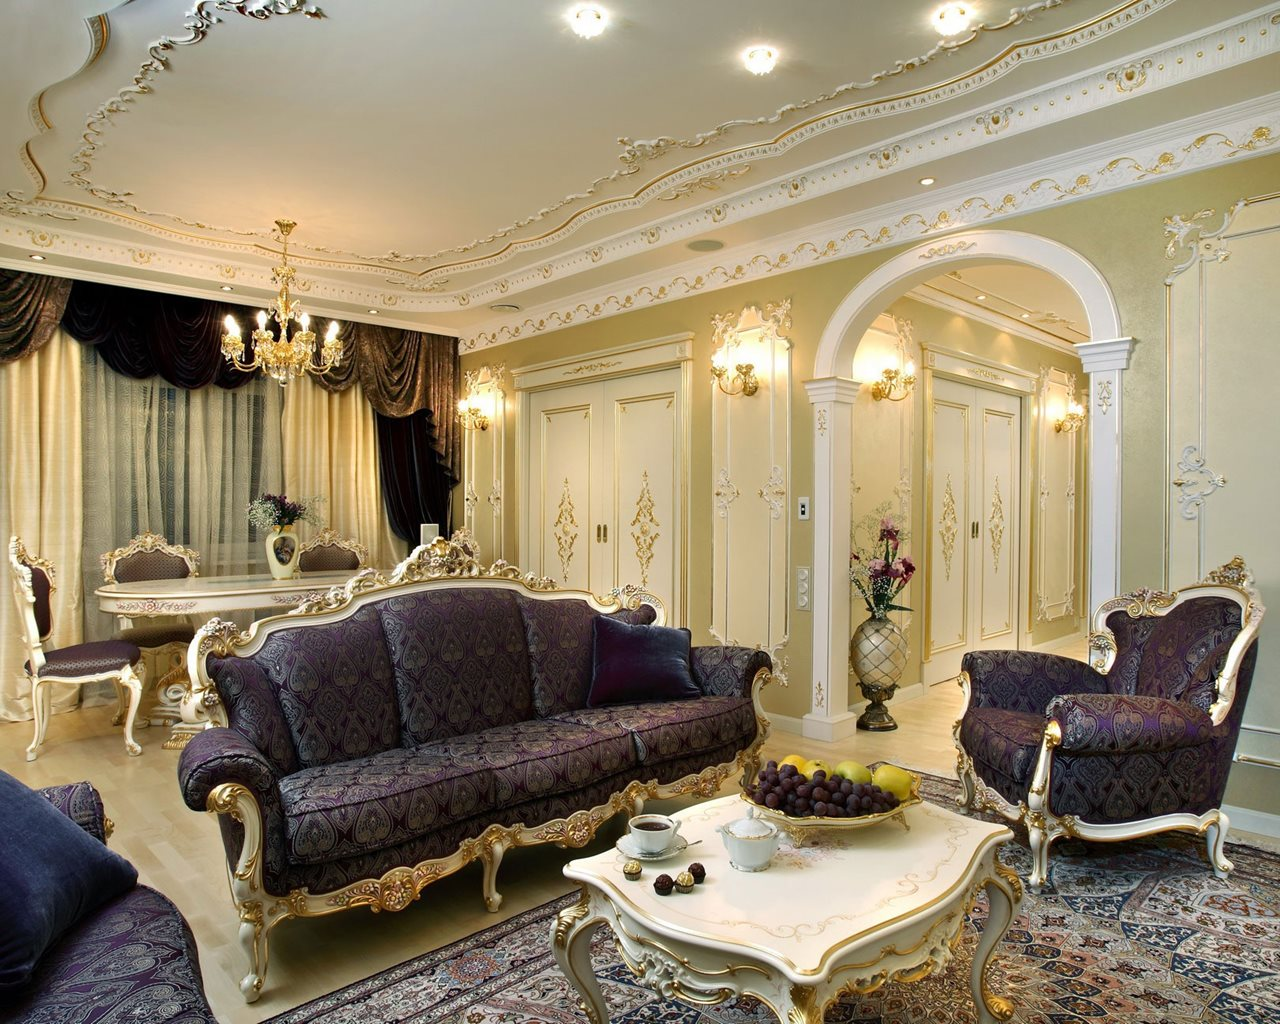 Baroque style interior design ideas for Interior design styles living room 2015